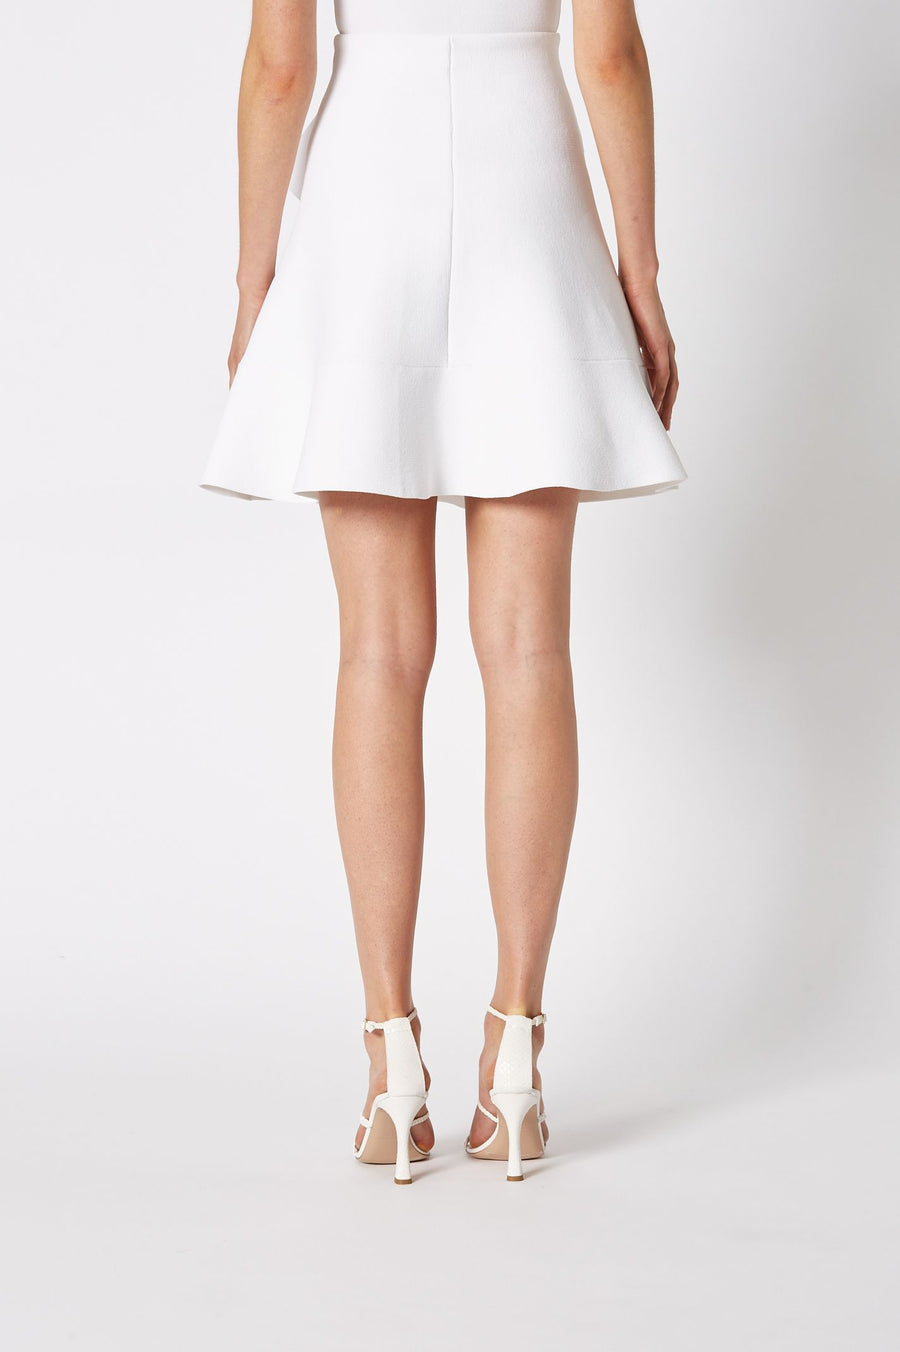 CREPE KNIT RUFFLE SKIRT, FALLS JUST ABOVE KNEE, A-LINE STYLE WITH ONE SIDE RUFFLE, COLOR WHITE